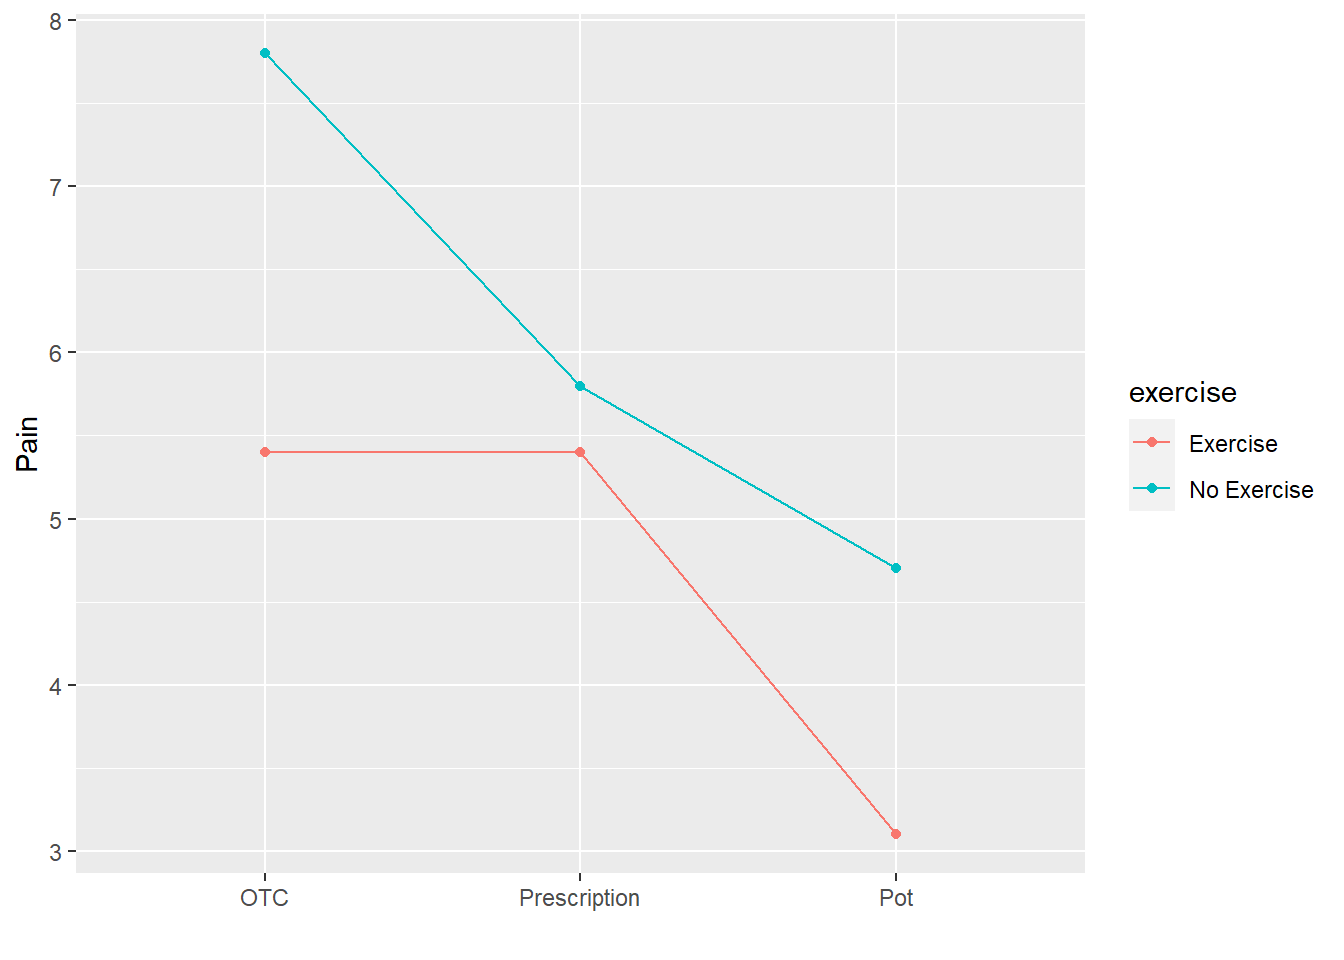 Interaction plot of pain by exercise and drug